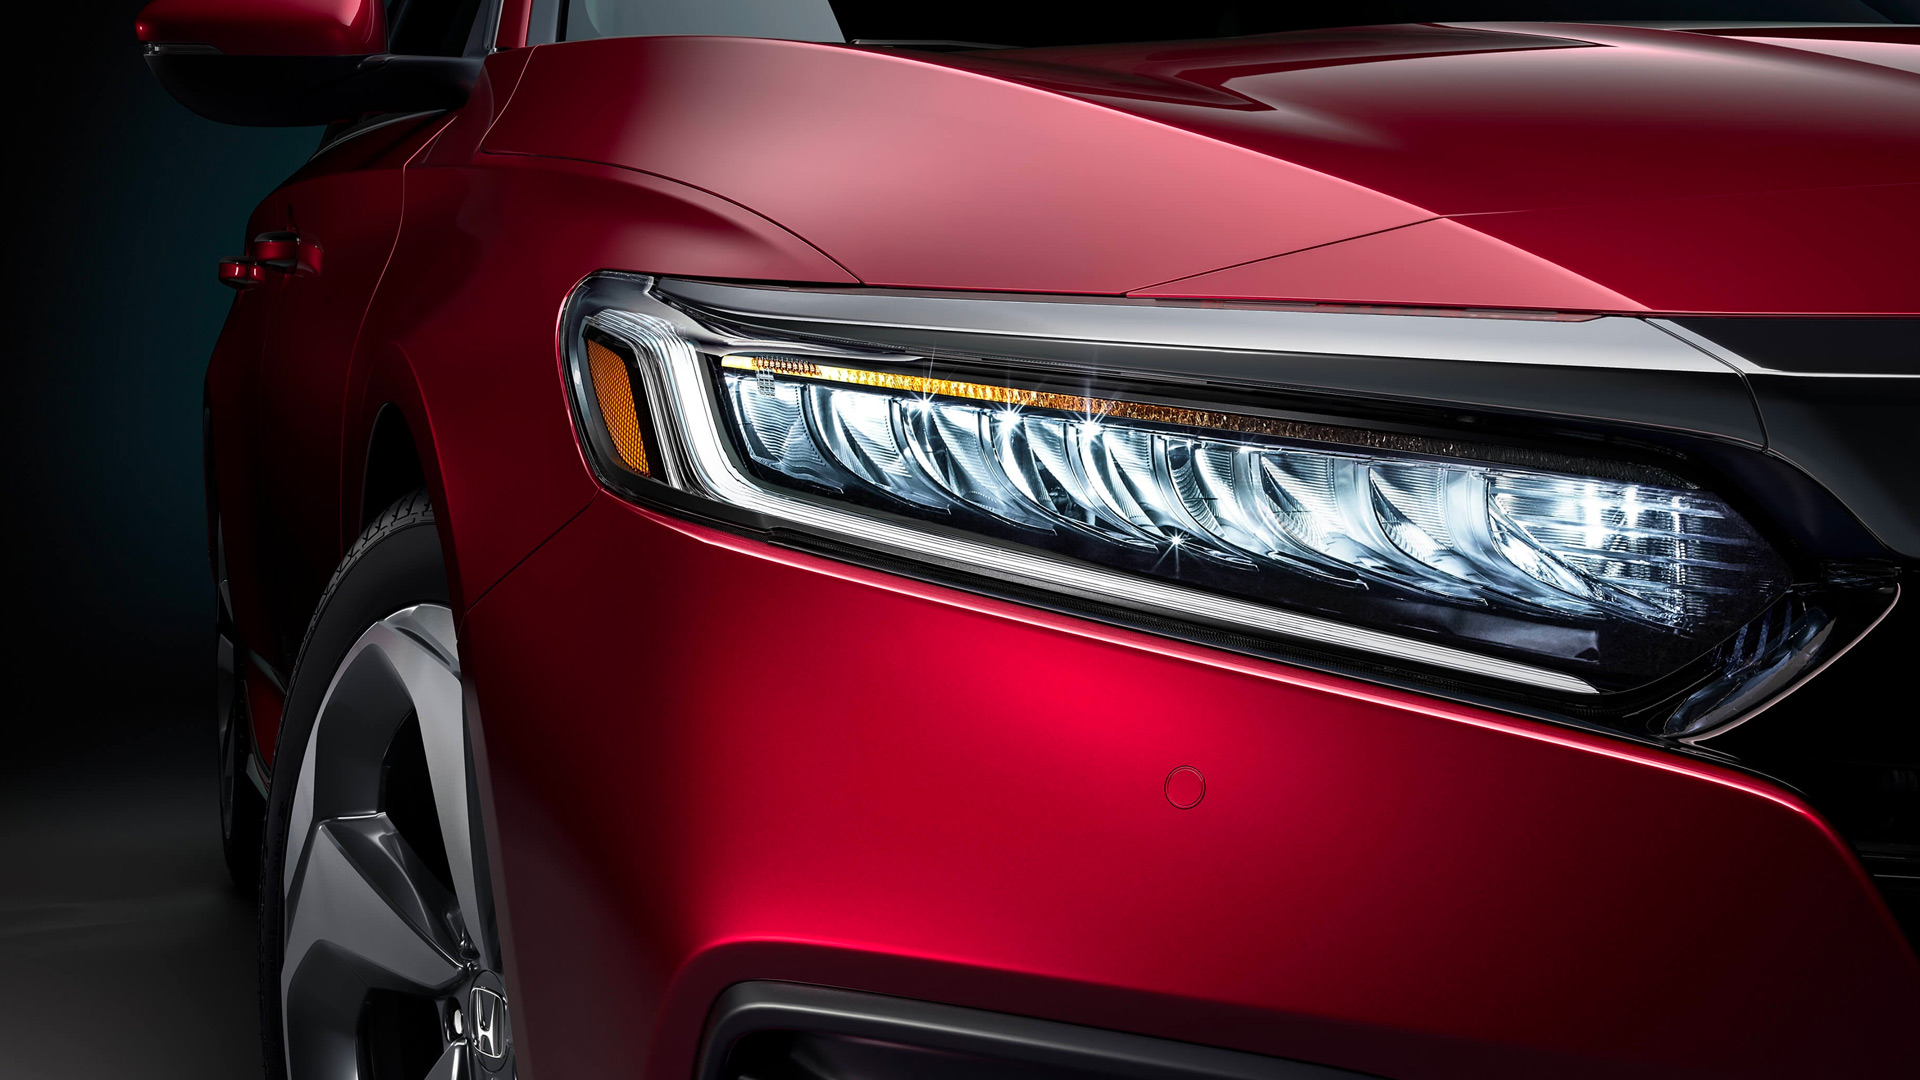 2020 Accord Red Right Headlight View